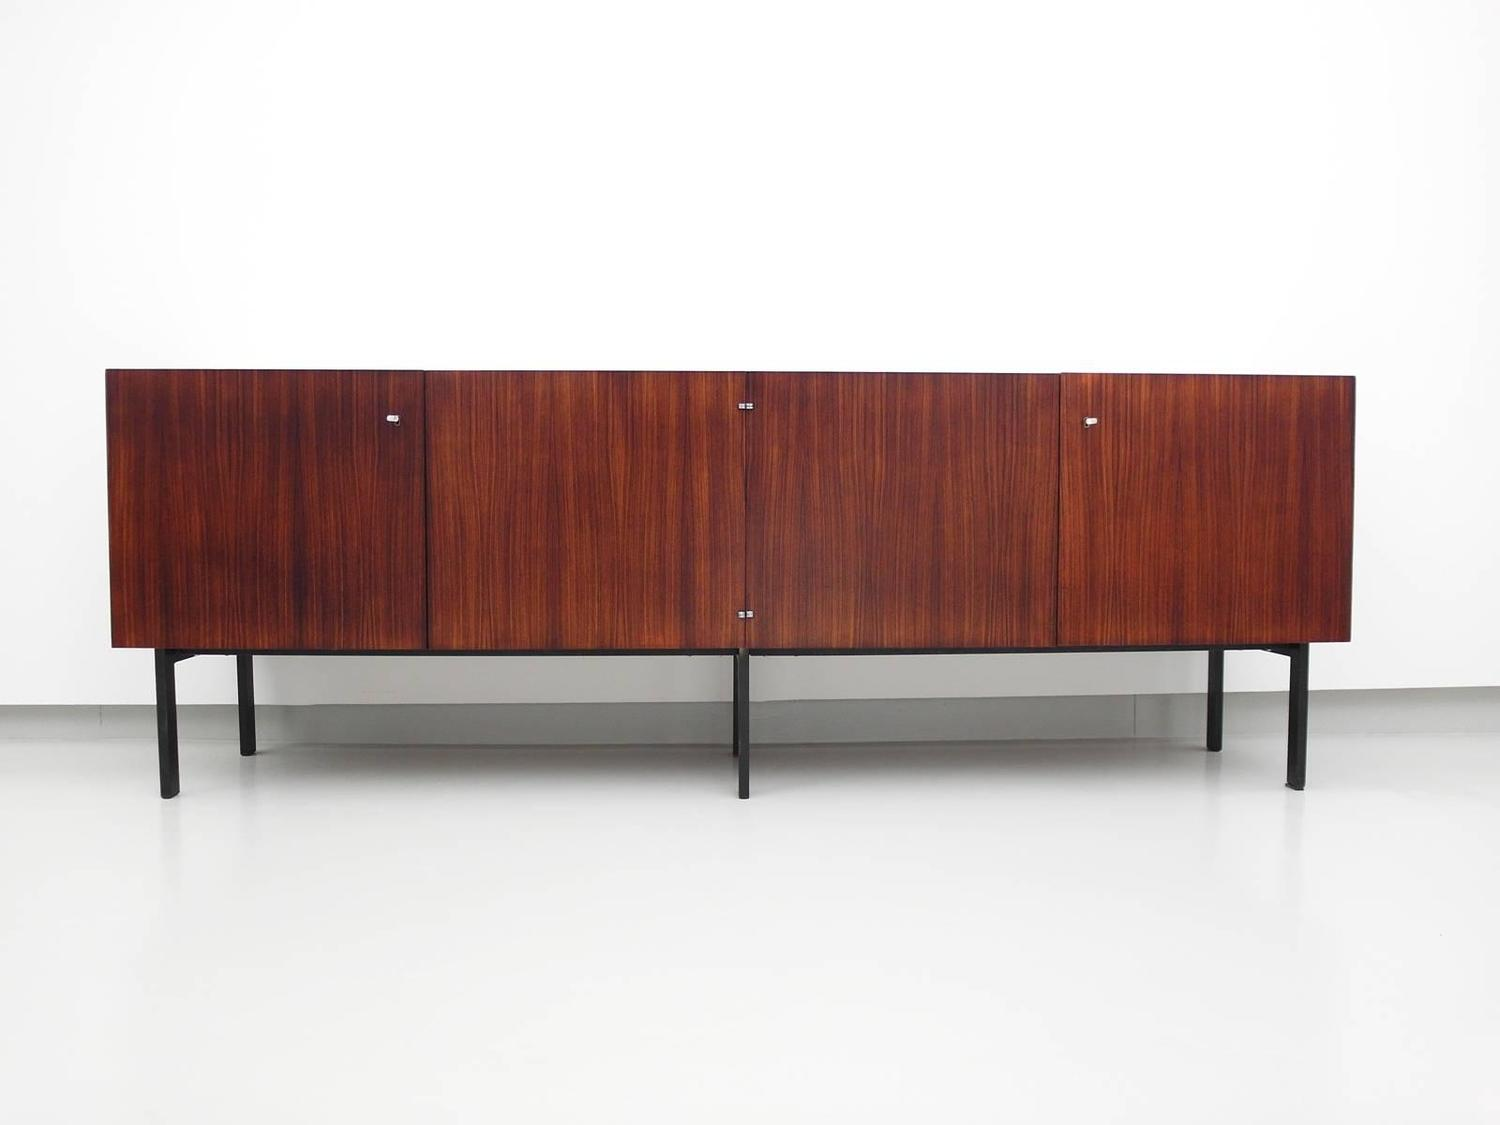 rosewood sideboard attributed to etienne fermigier for